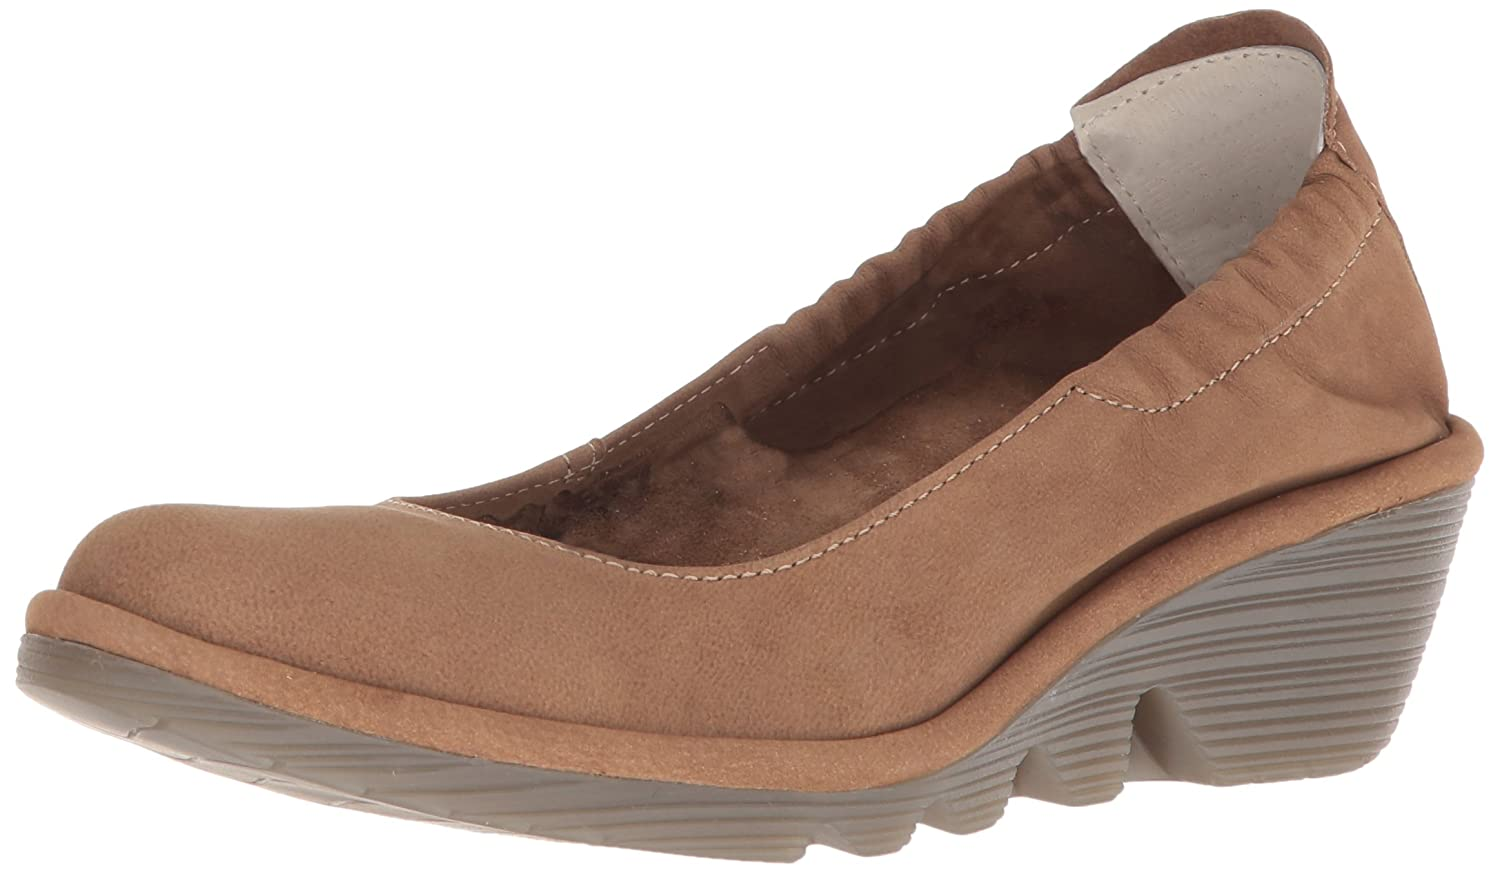 FLY London Women's PLED819FLY Pump B0759Z6HHG 42 M EU|Sand Cupido